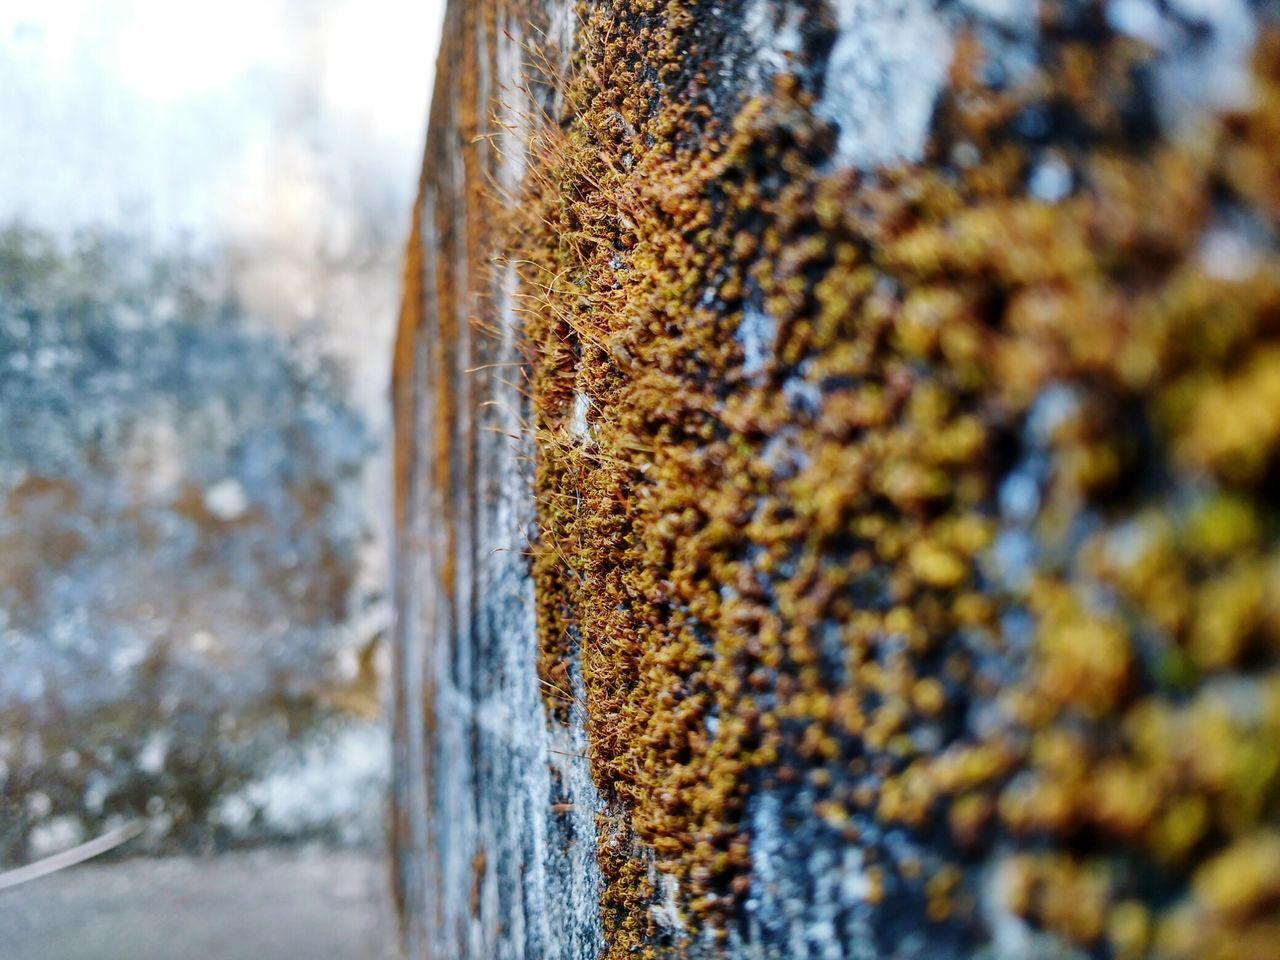 lichen, day, textured, selective focus, no people, close-up, outdoors, tree trunk, focus on foreground, rusty, nature, growth, tree